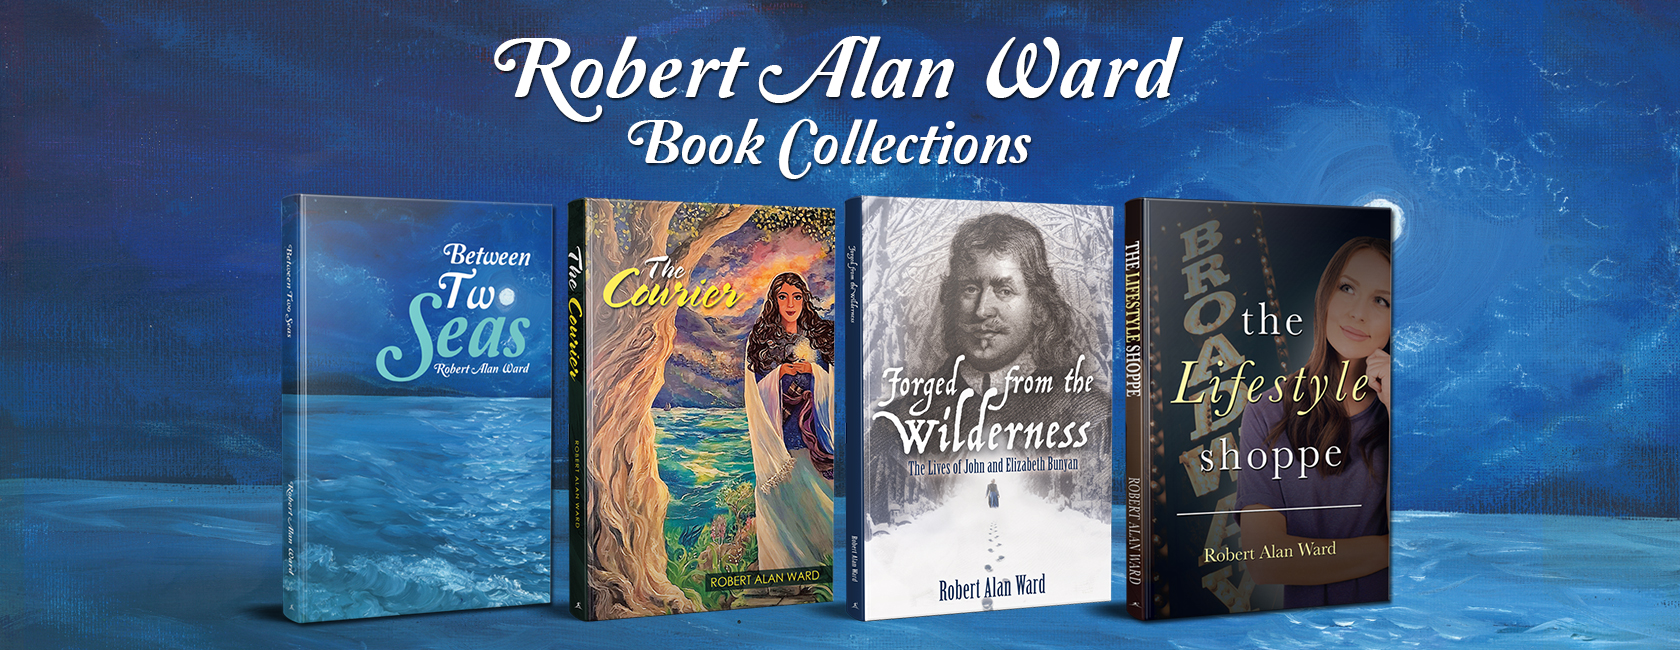 Robert Alan Ward Book Collections